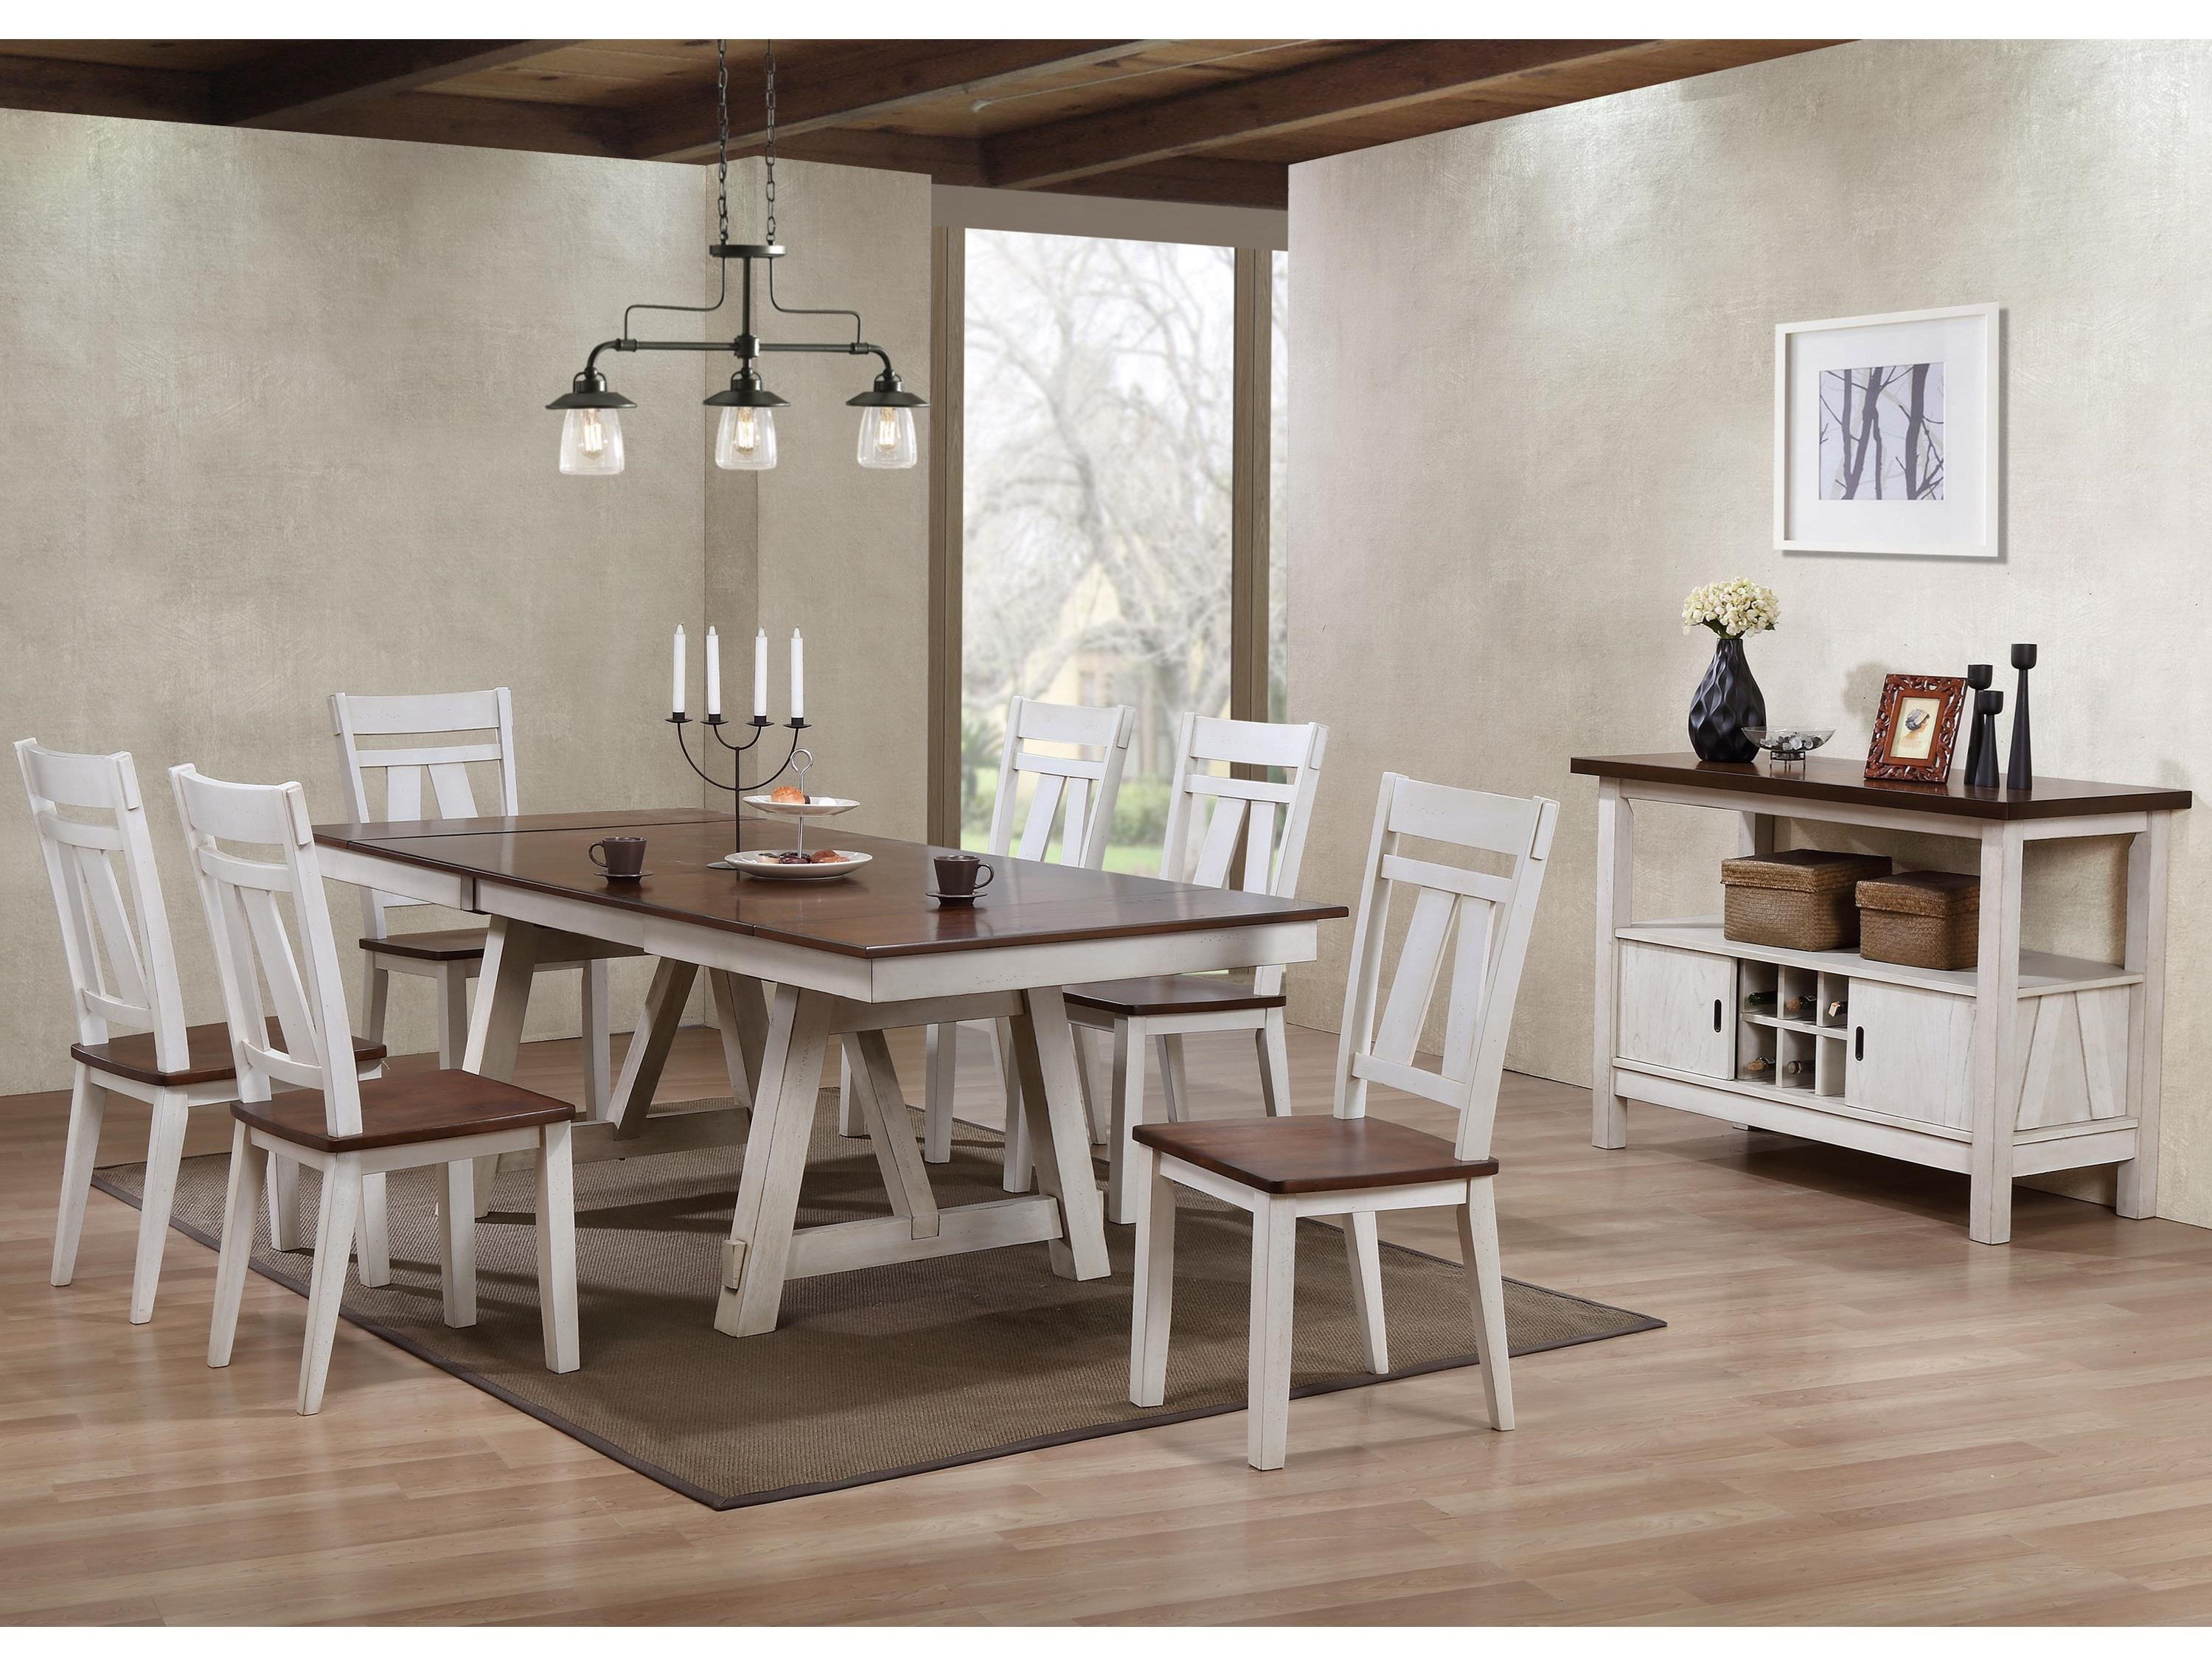 Wayside Dining Room Furniture: Bernards Winslow Casual Dining Room Group